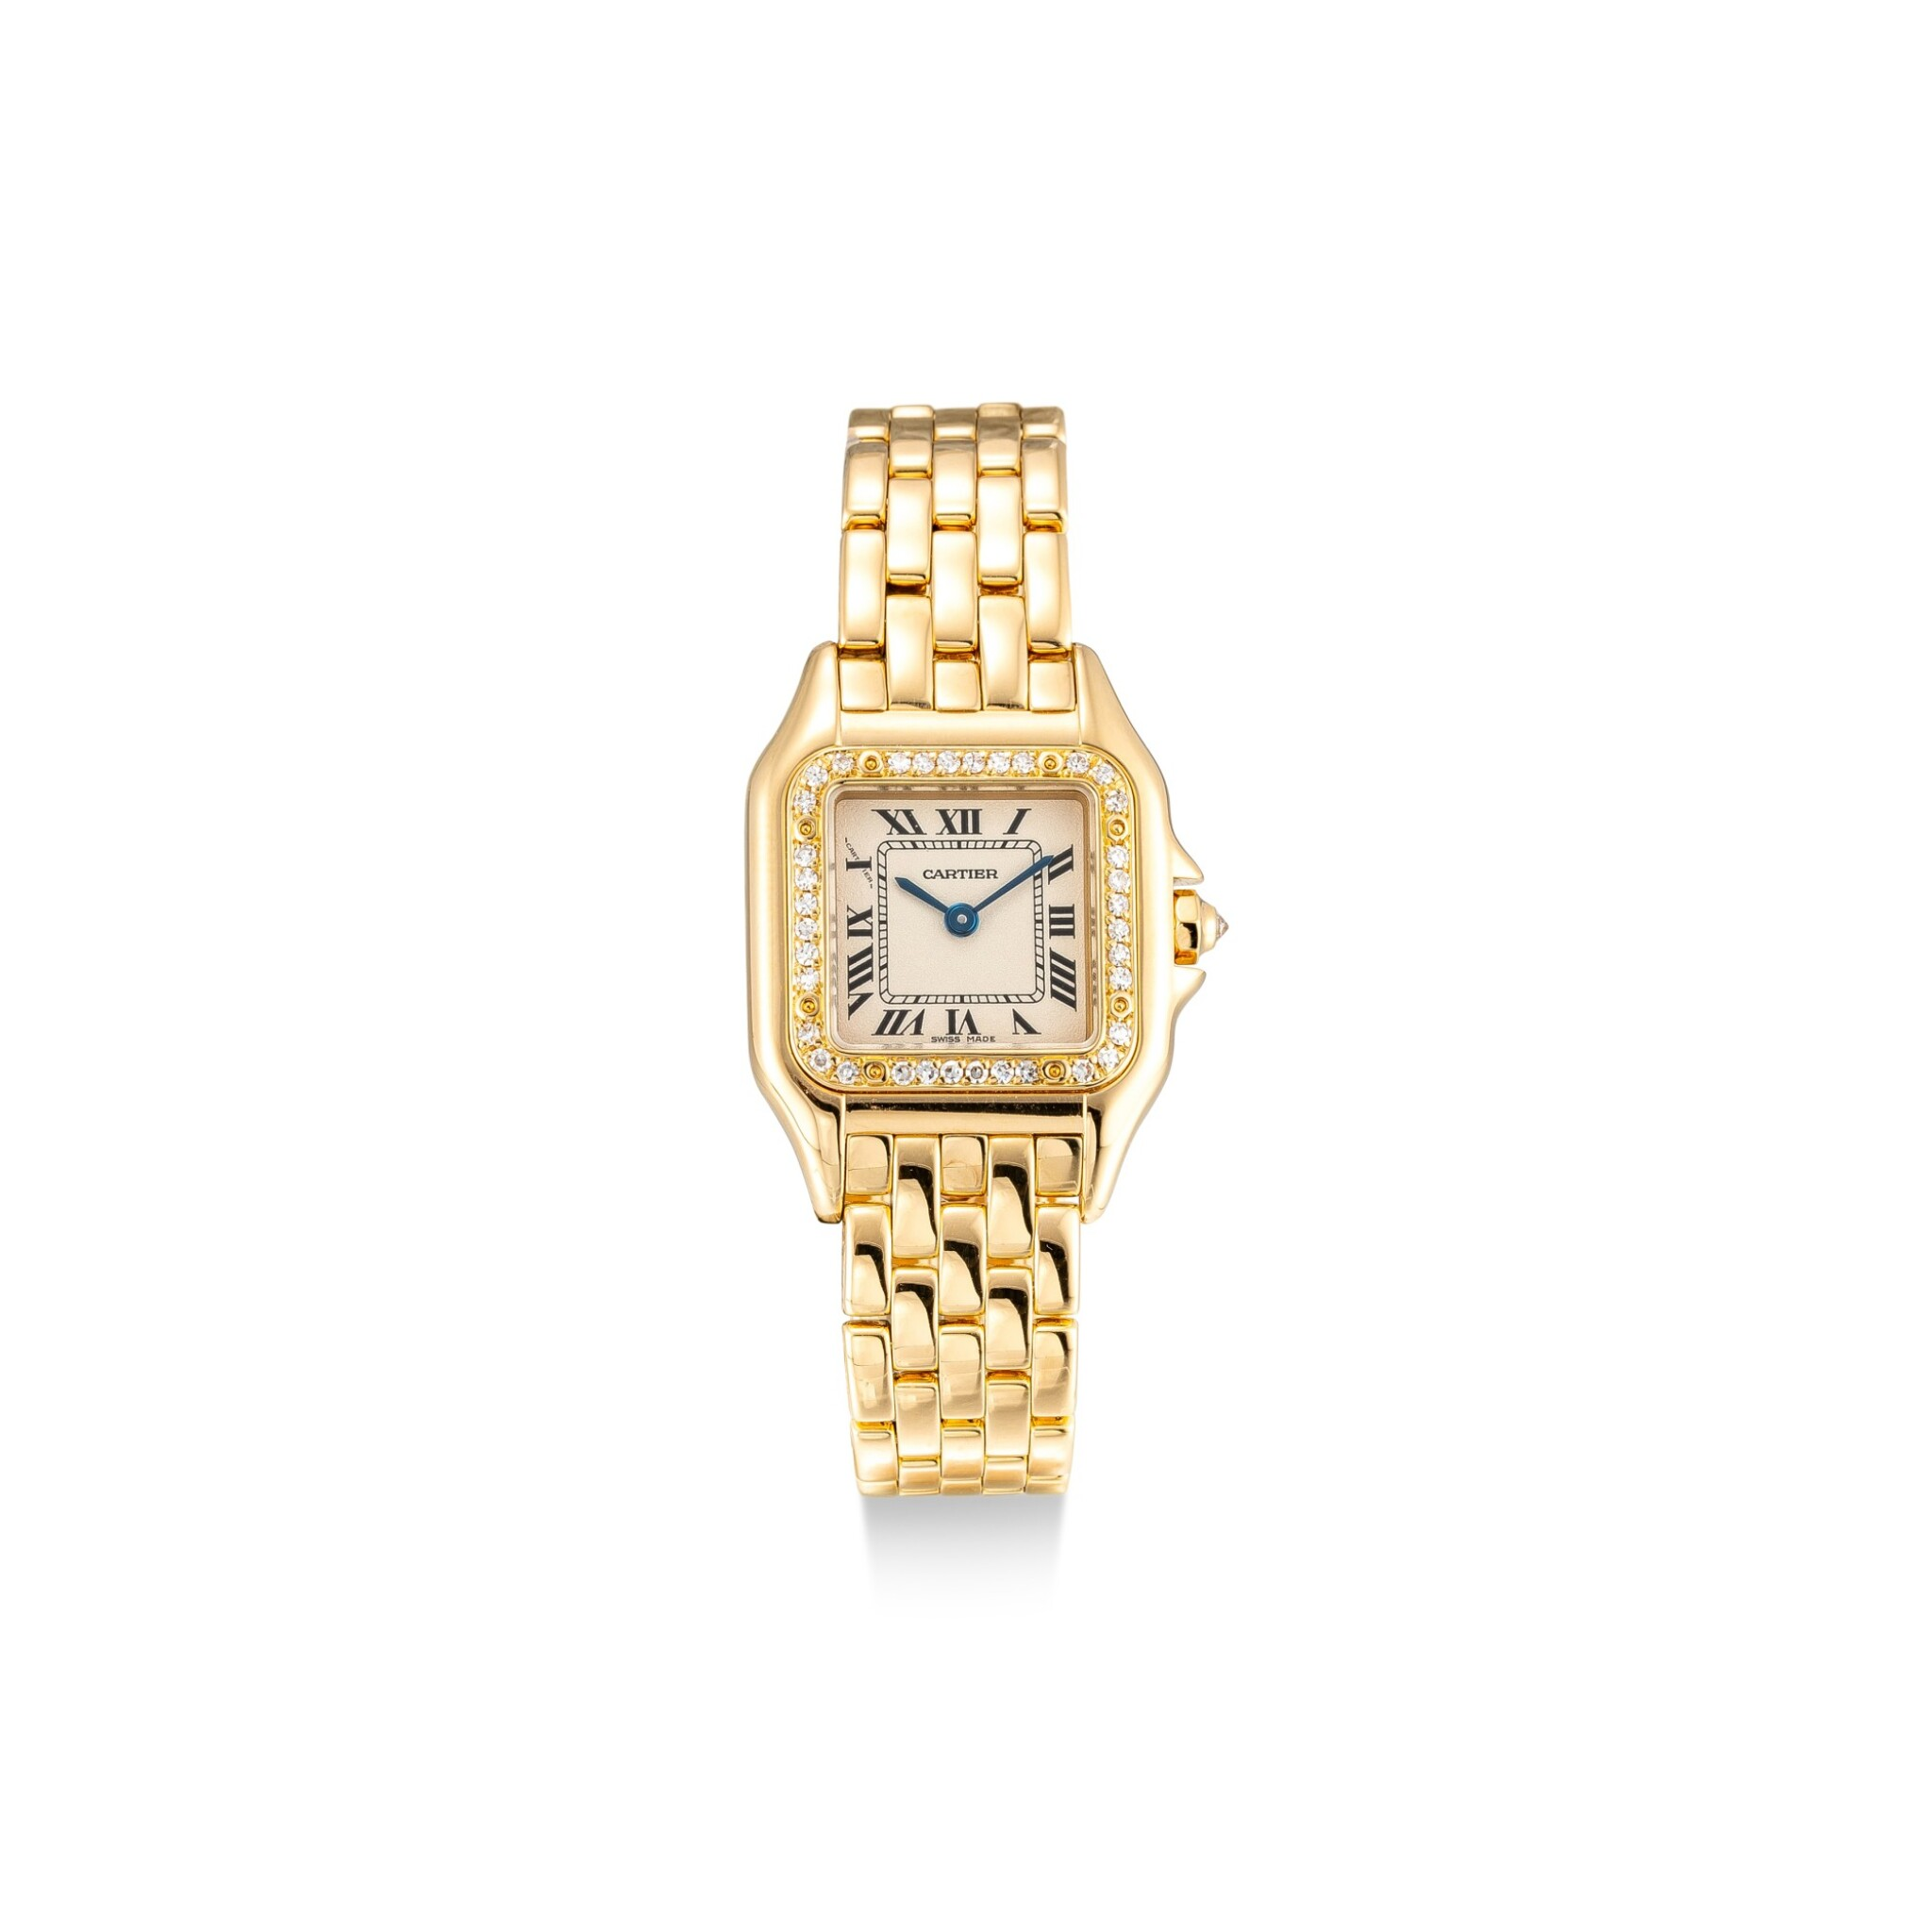 View full screen - View 1 of Lot 8091. CARTIER   PANTHÈRE, REFERENCE 8057915   A YELLOW GOLD AND DIAMOND-SET WRISTWATCH WITH BRACELET, CIRCA 2010   卡地亞   Panthère 型號8057915    黃金鑲鑽石鏈帶腕錶,約2010年製.